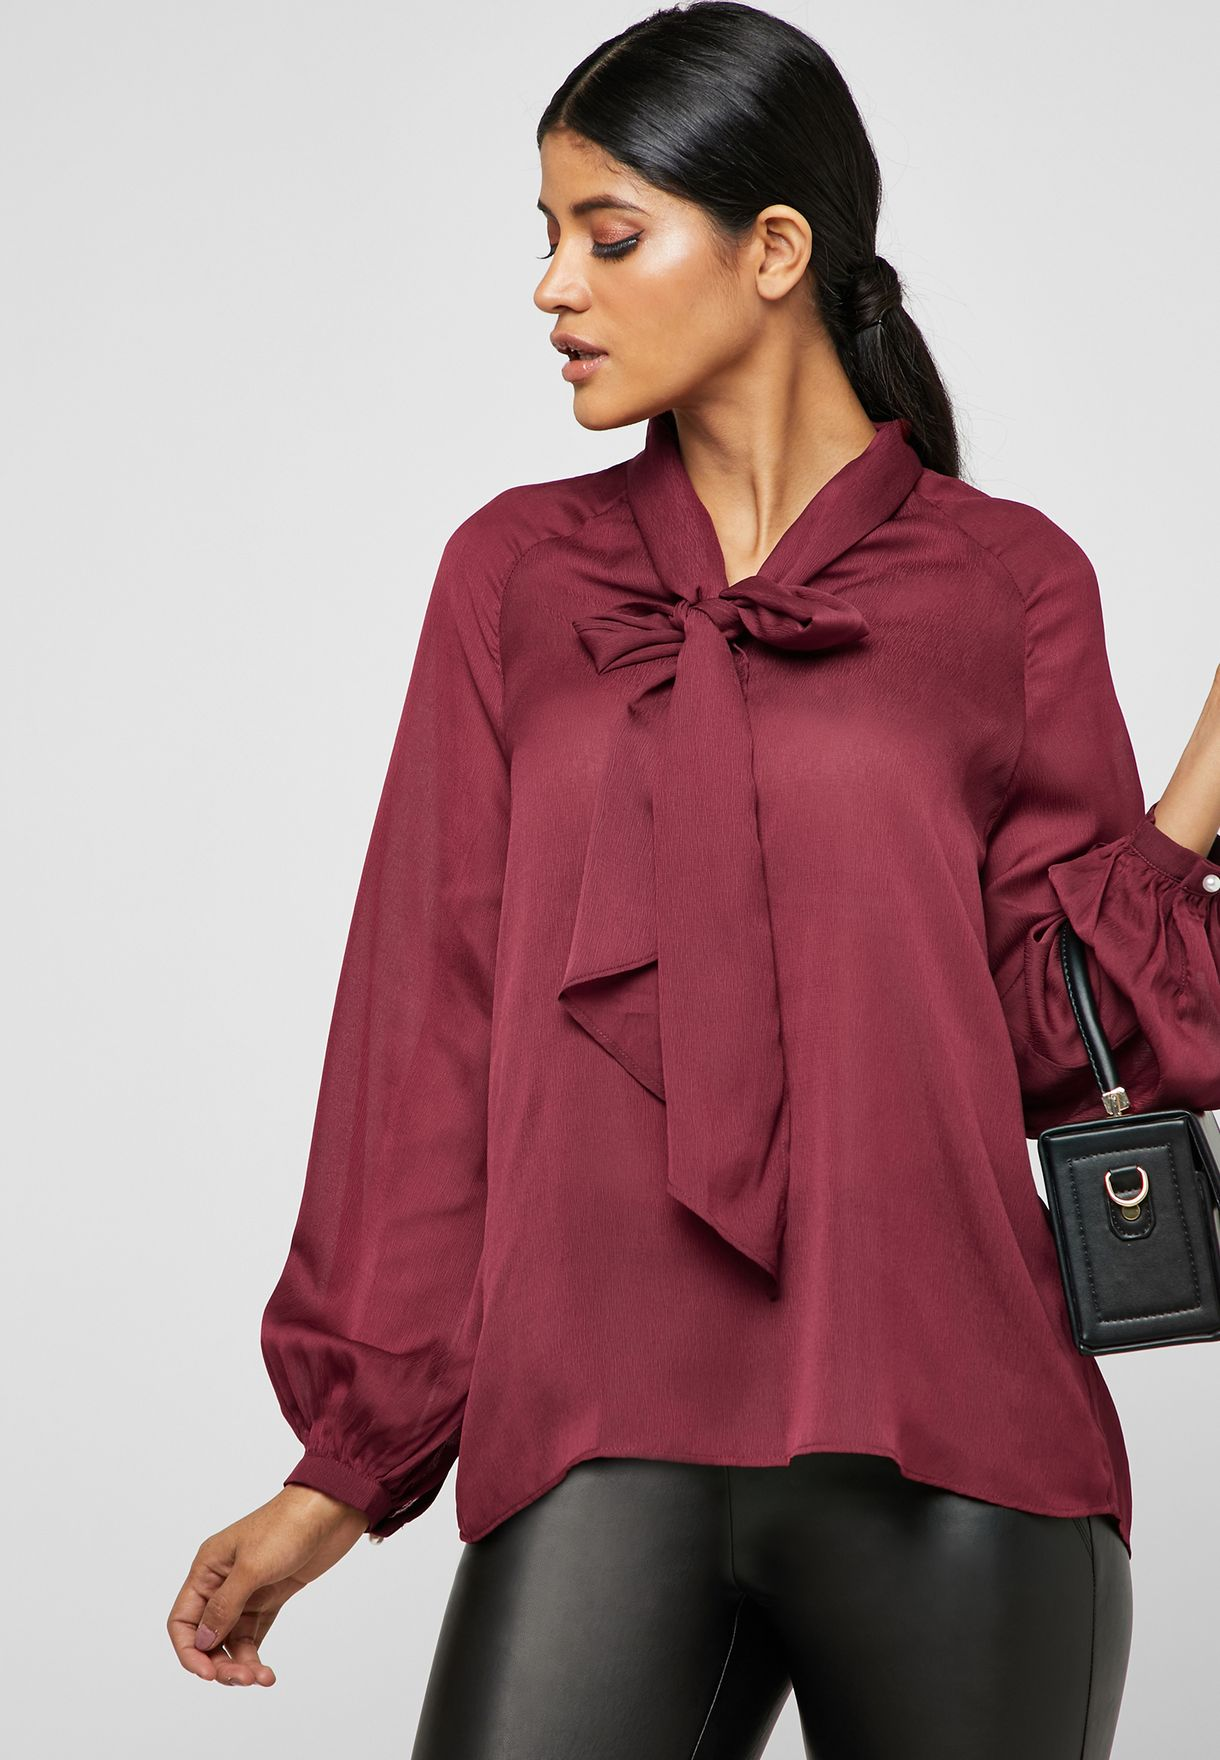 846bb739e Shop Ella burgundy Tie Neck Top 5SY057 for Women in Qatar - 13288AT11GBP